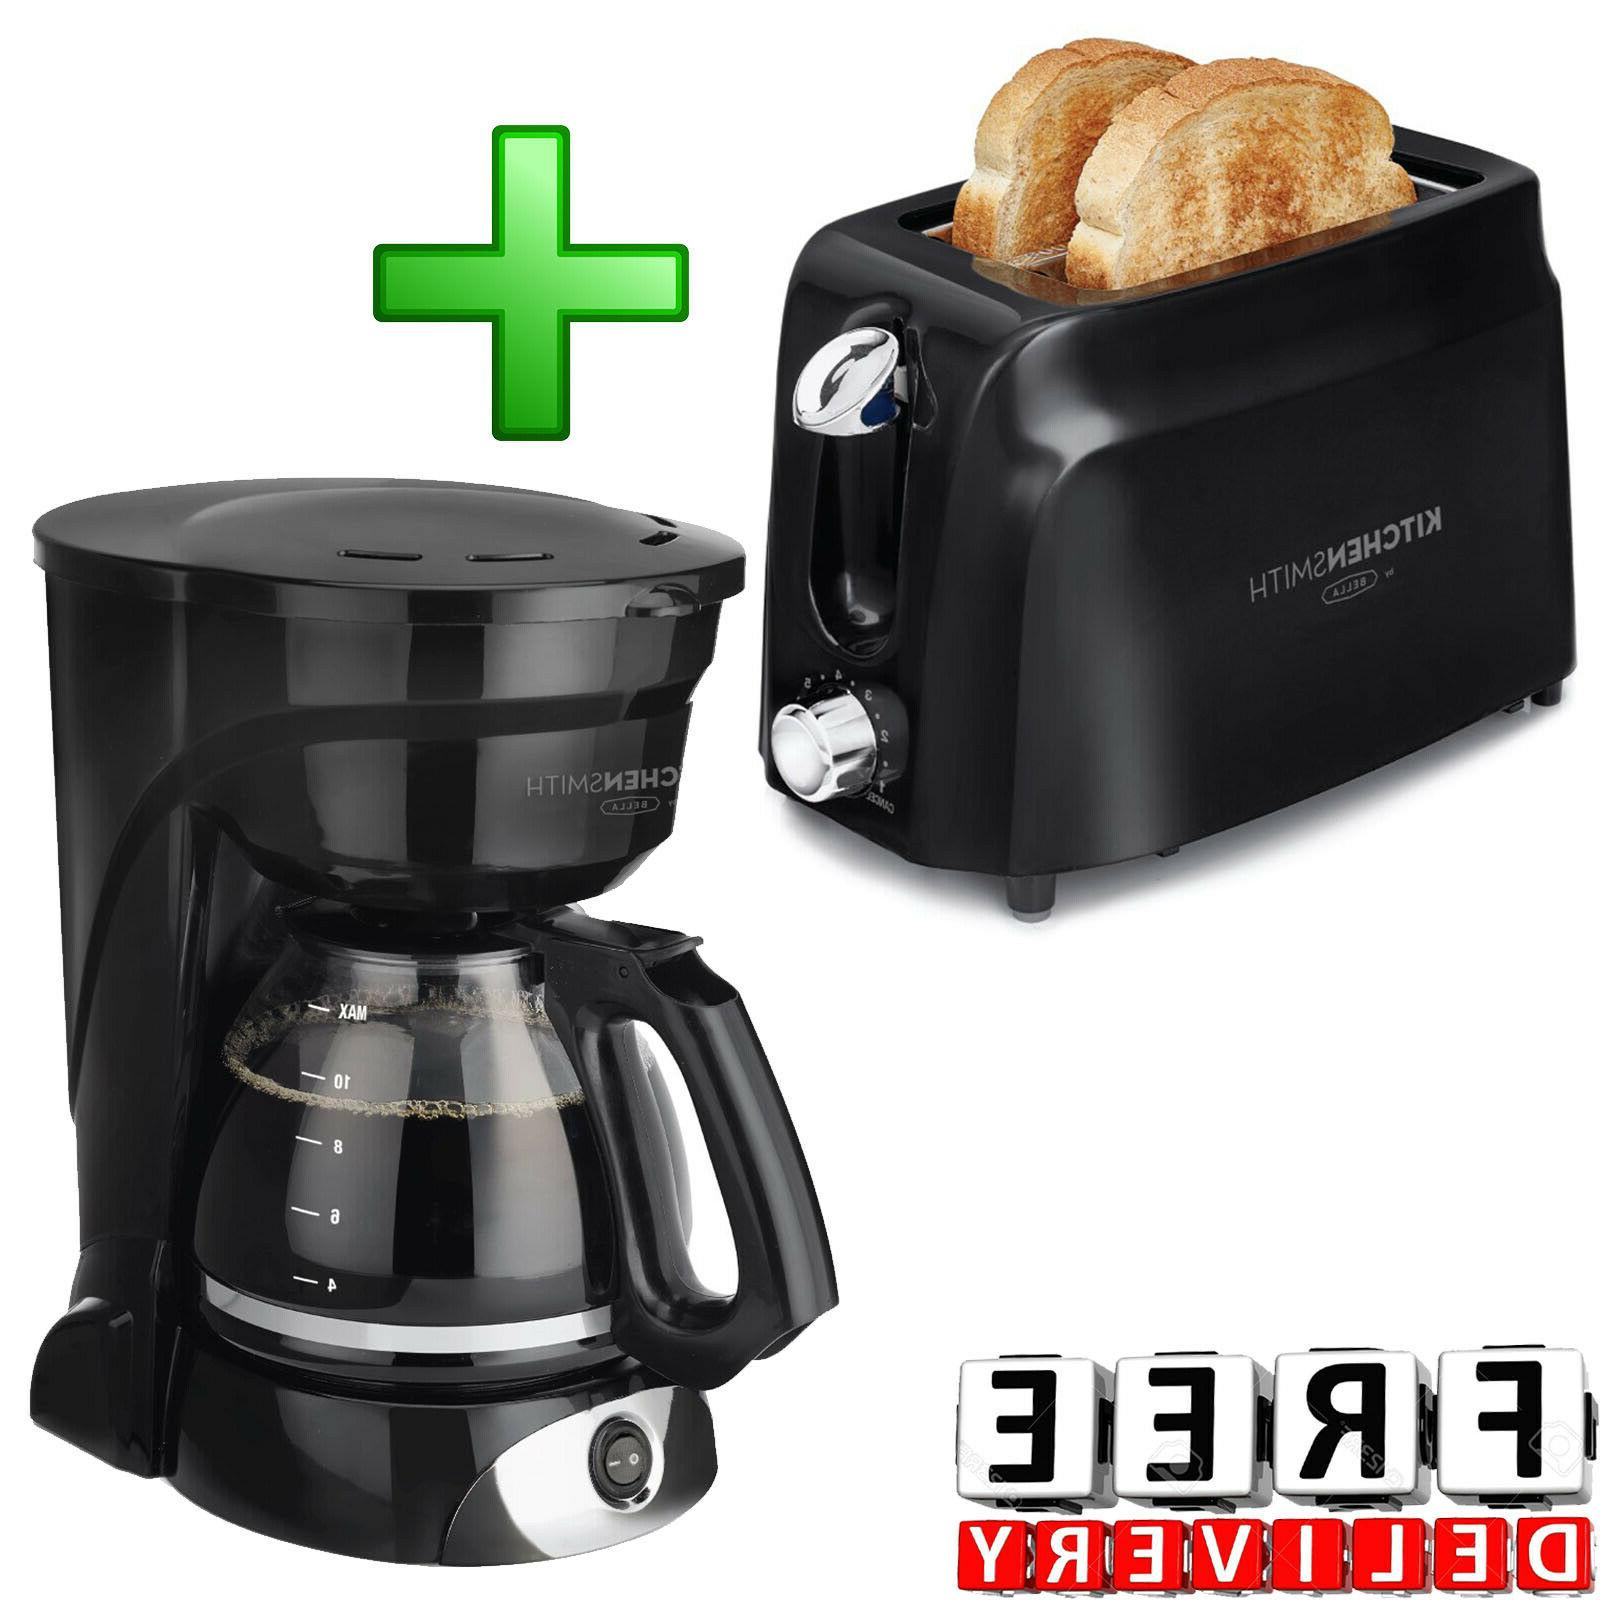 Coffee Maker 12 Cup Plus 2 Slice Toaster Kitchen Appliances